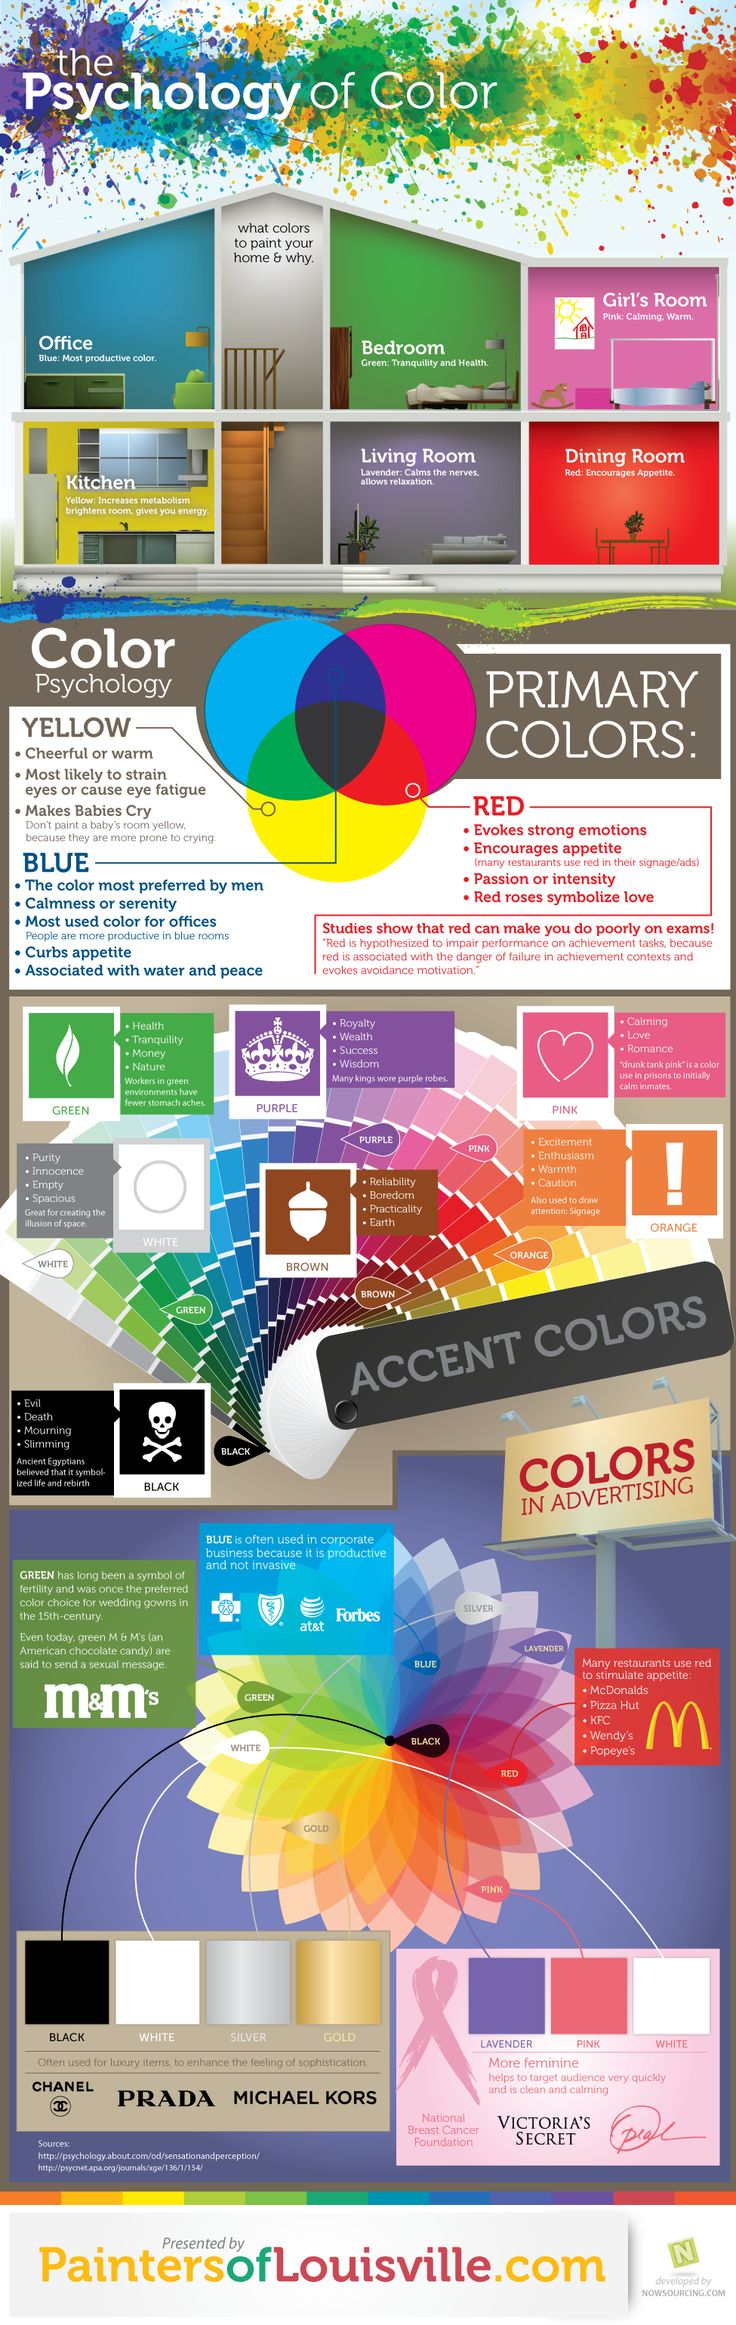 An infographic that takes a creative and interesting look at how color is perceived and how it triggers certain thoughts and emotions.